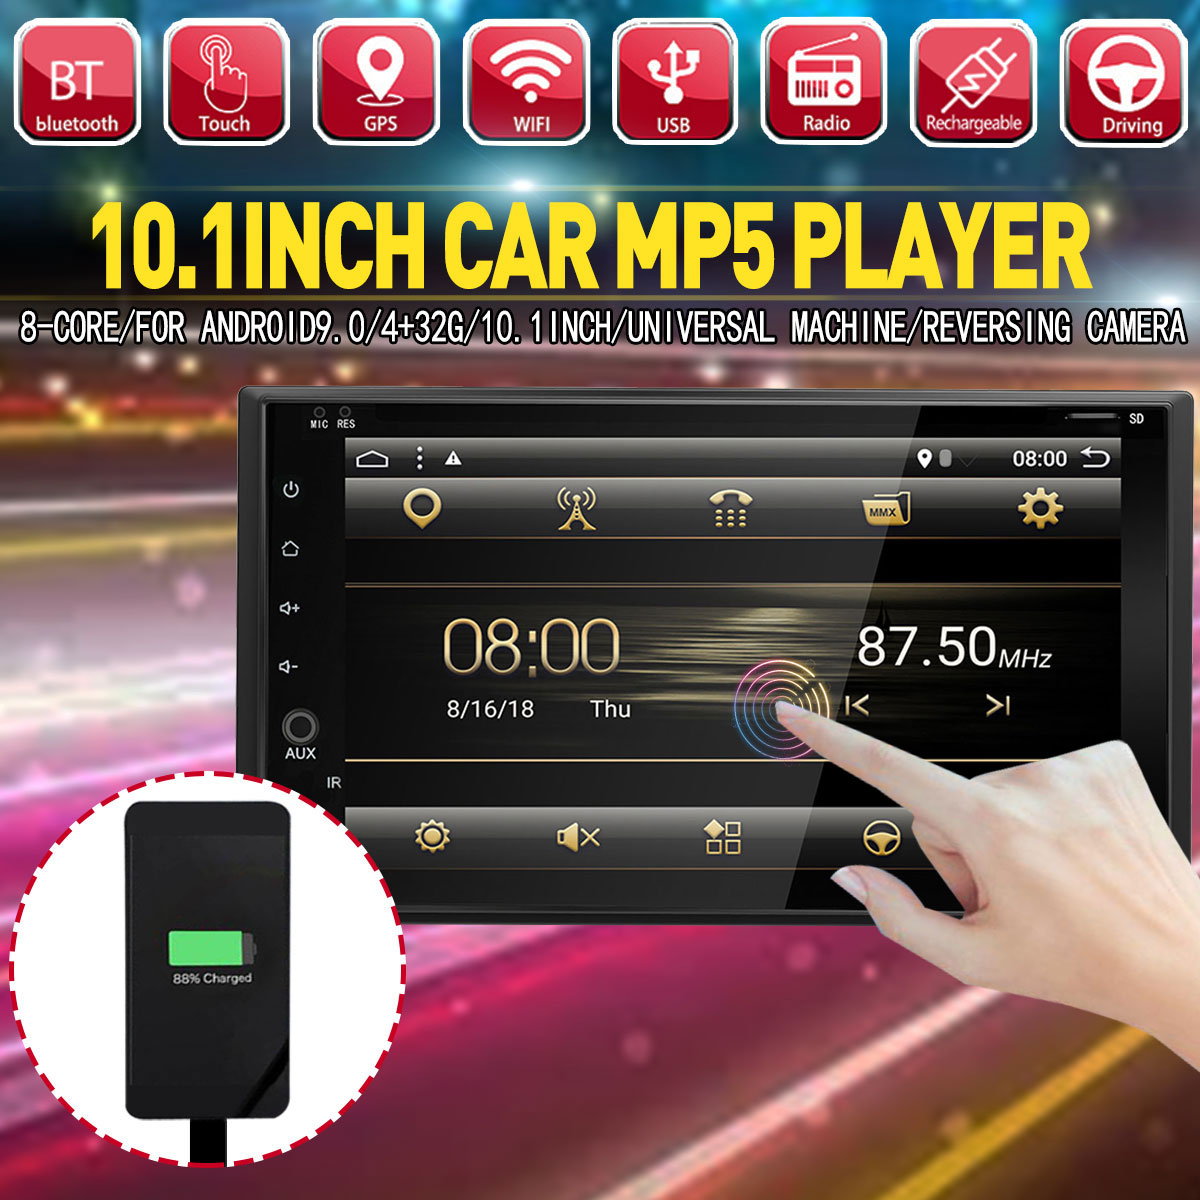 10.1 8core 4+32G Android 9.0 Car MP5 Player 2DIN bluetooth Radio PX6 GPS For Universal Car Multimedia Player+Backup Camera10.1 8core 4+32G Android 9.0 Car MP5 Player 2DIN bluetooth Radio PX6 GPS For Universal Car Multimedia Player+Backup Camera